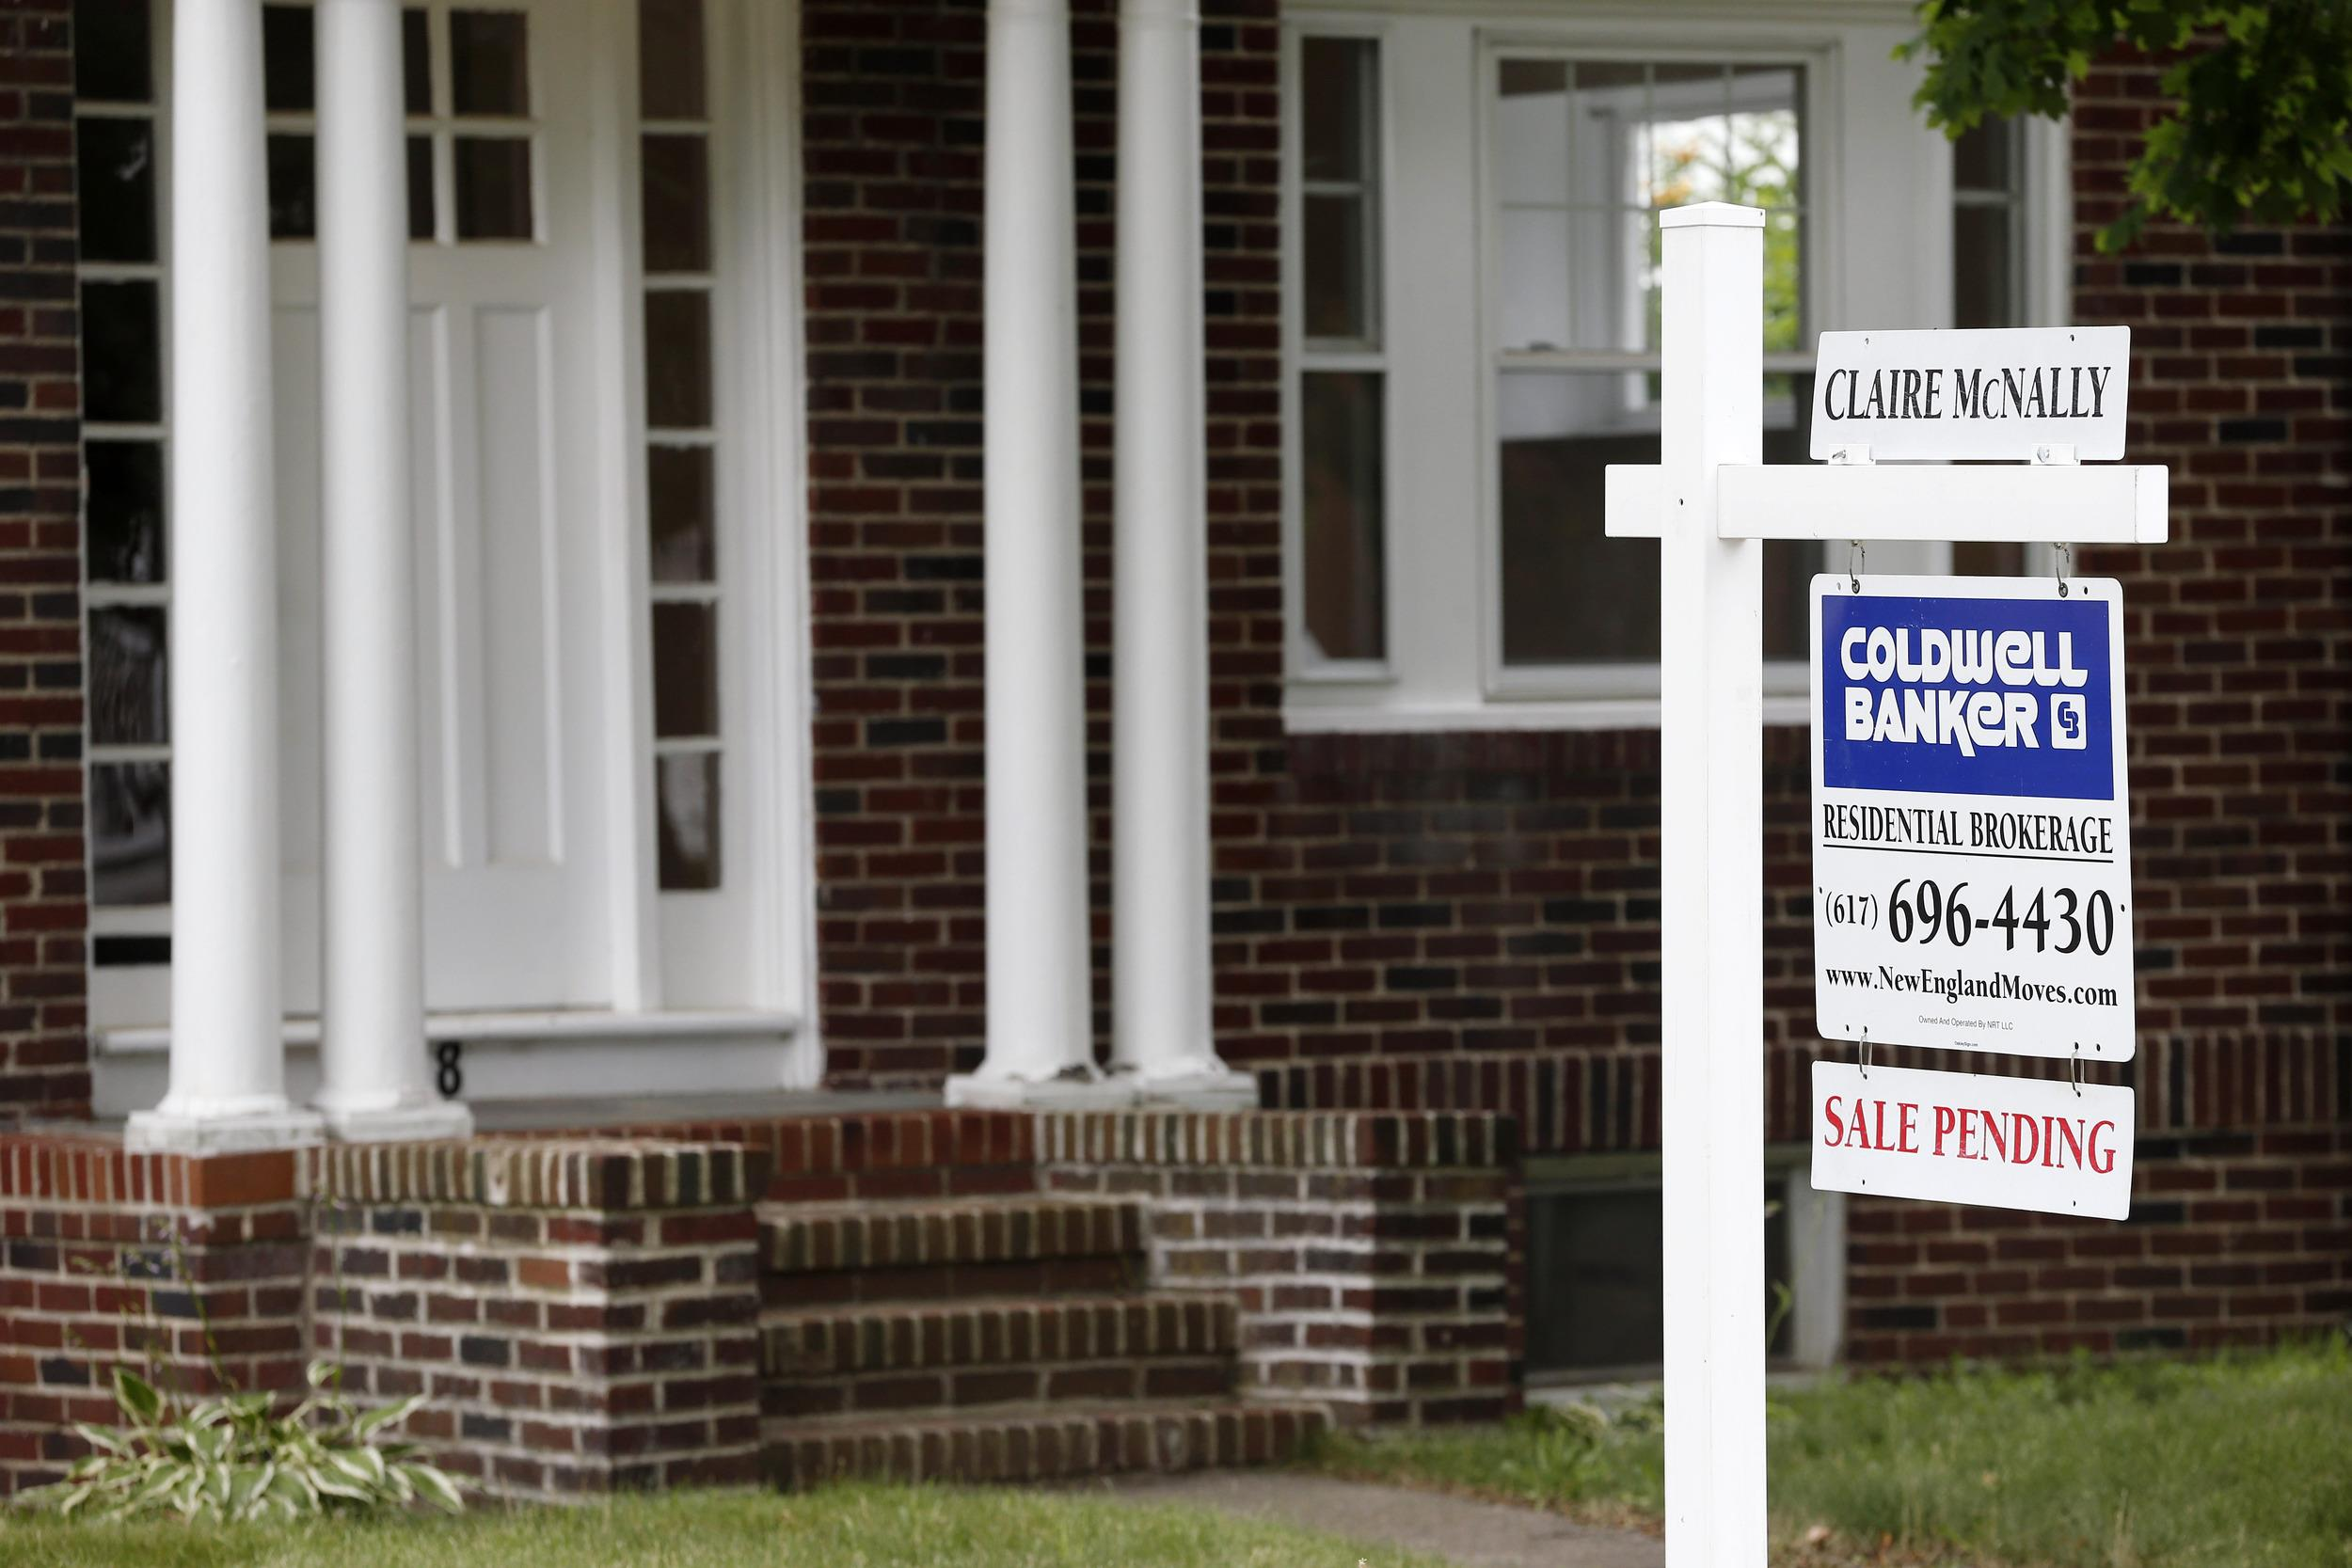 U.S. home buyers signed more contracts to buy existing homes in July, rebounding from a drop in June.